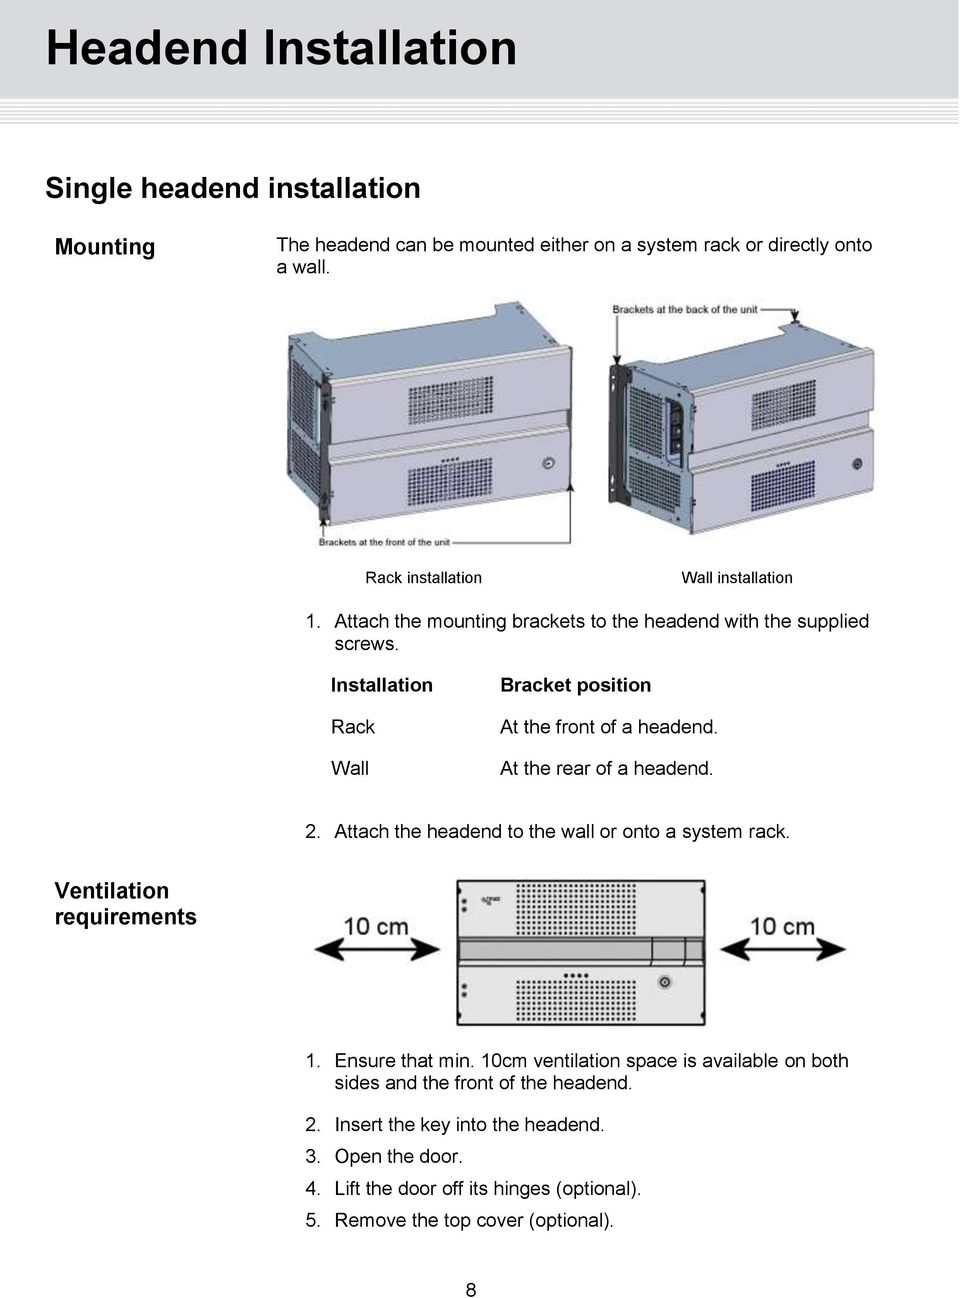 Installation Rack Wall Bracket position At the front of a headend. At the rear of a headend. 2. Attach the headend to the wall or onto a system rack.